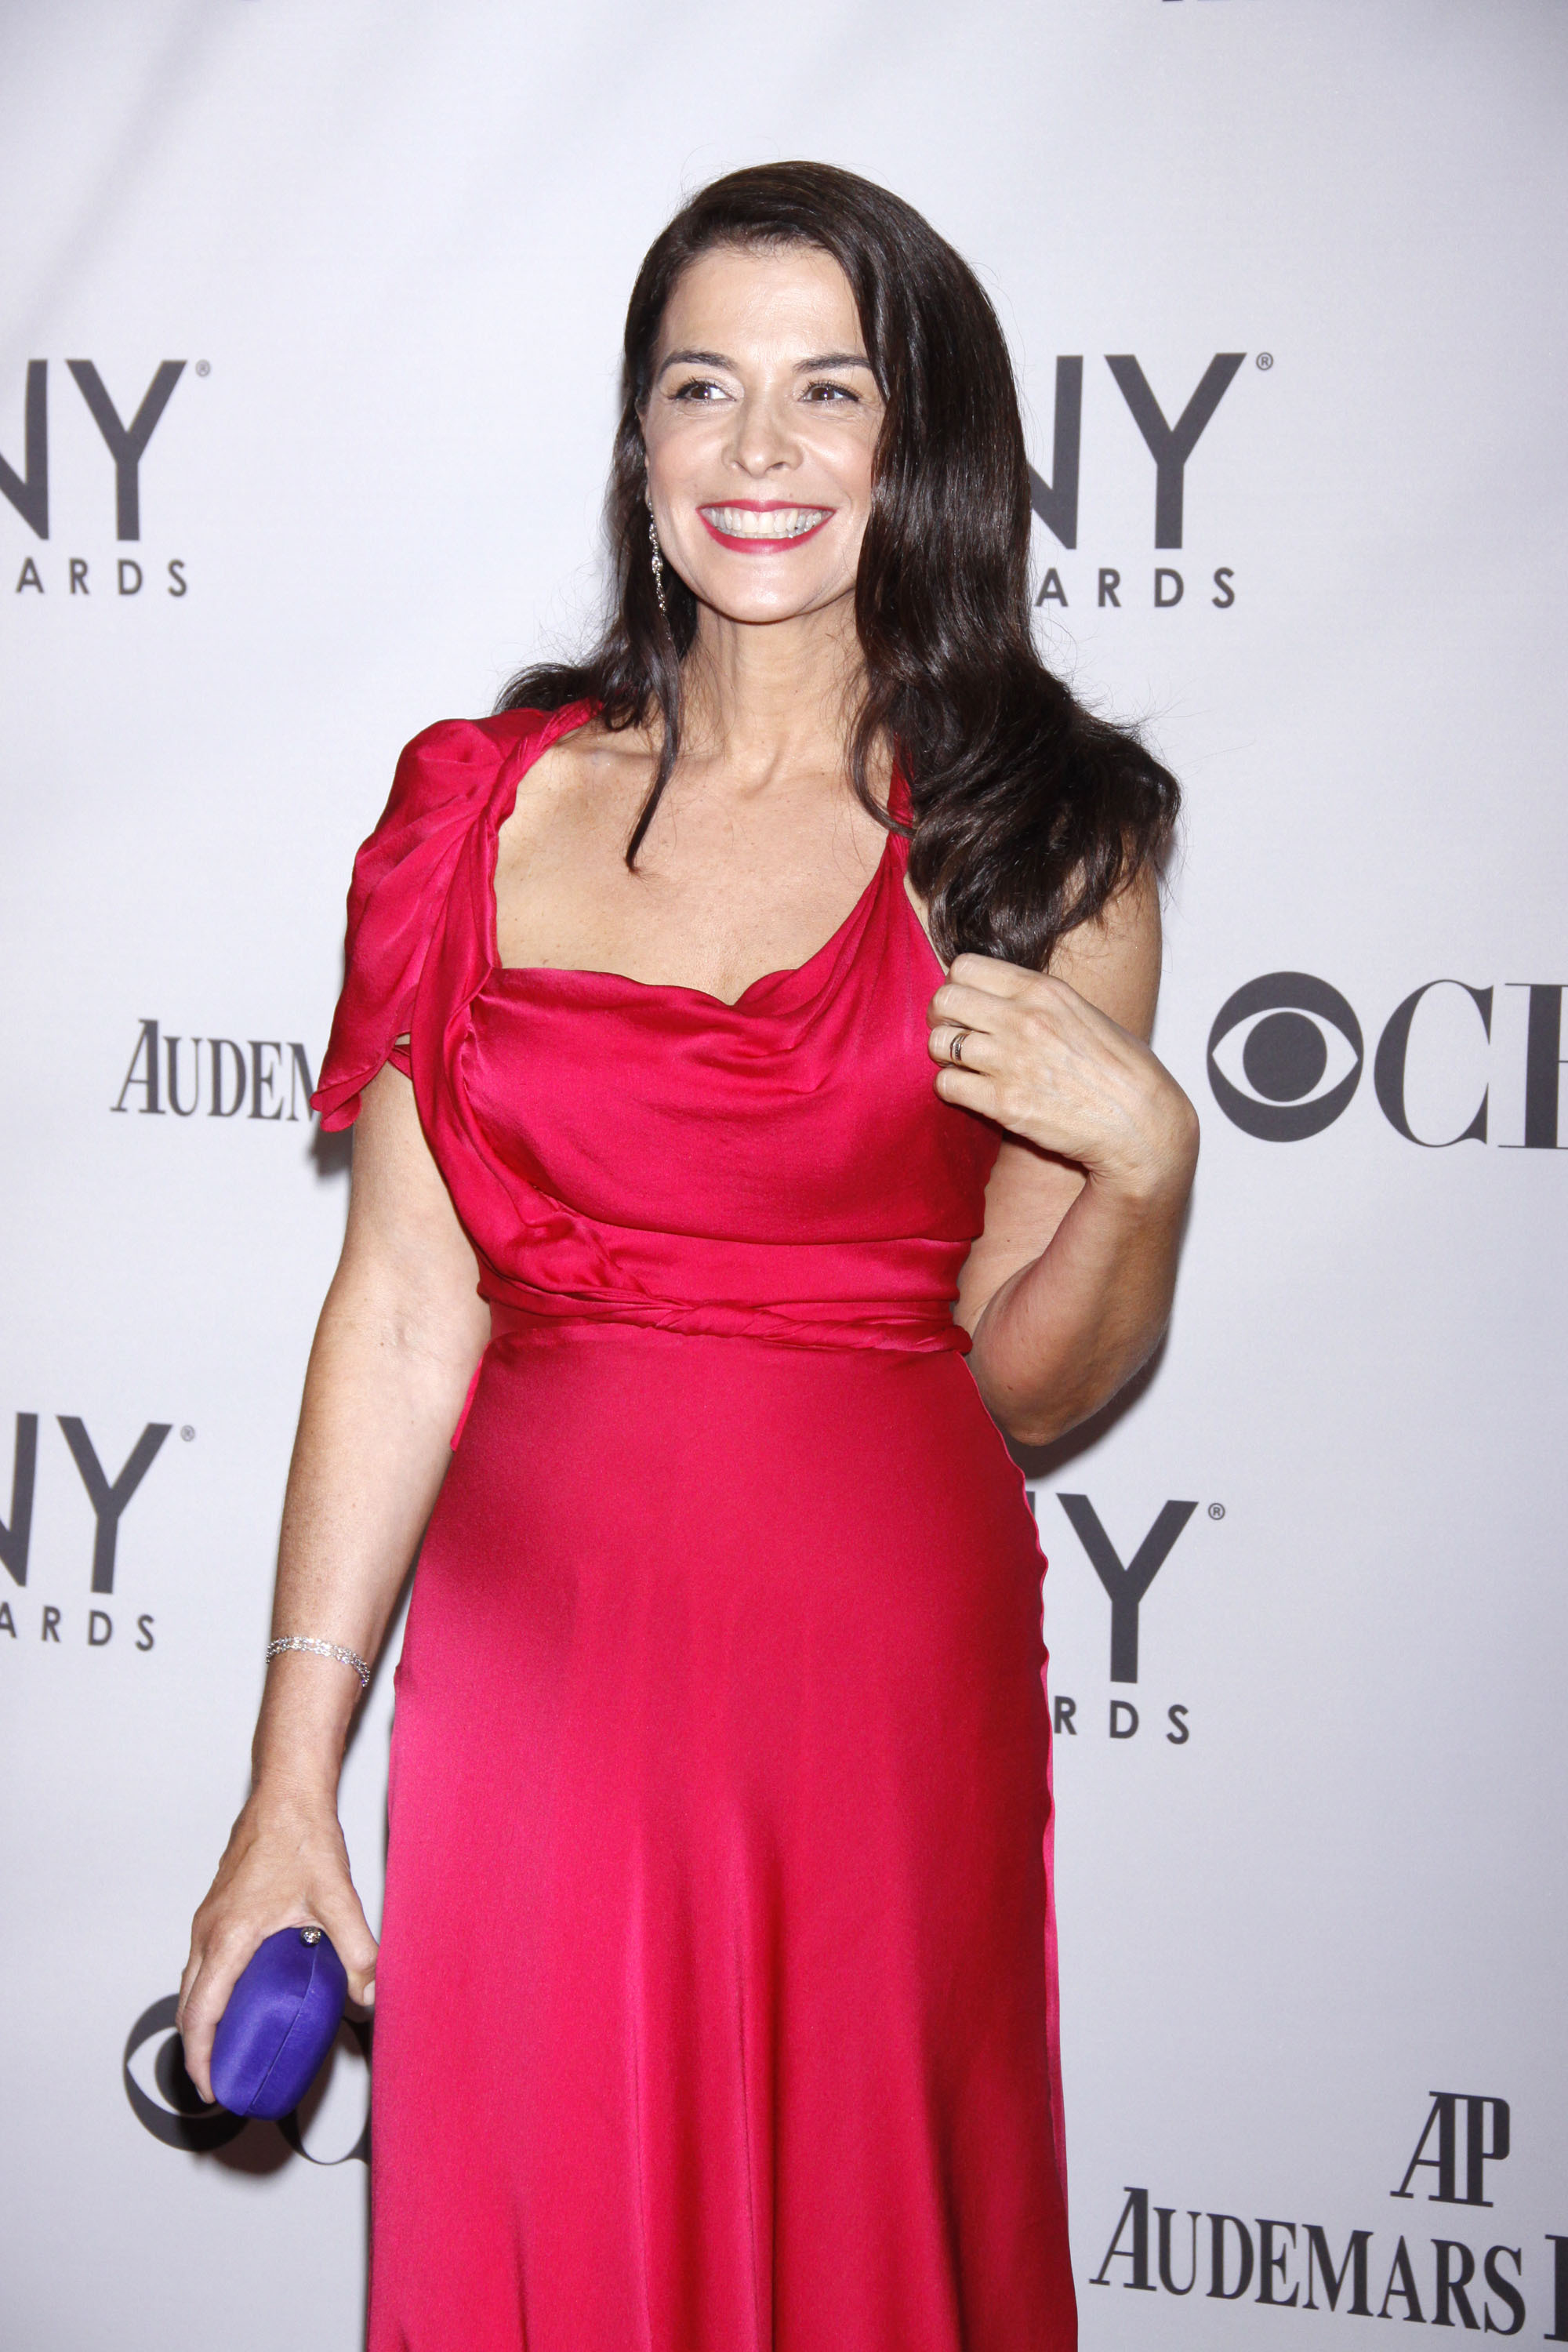 Annabella Sciorra at the 65th Annual Tony Awards, held at Beacon Theatre in New York City on June 12,  2011. (Joseph Marzullo/Wenn.com)